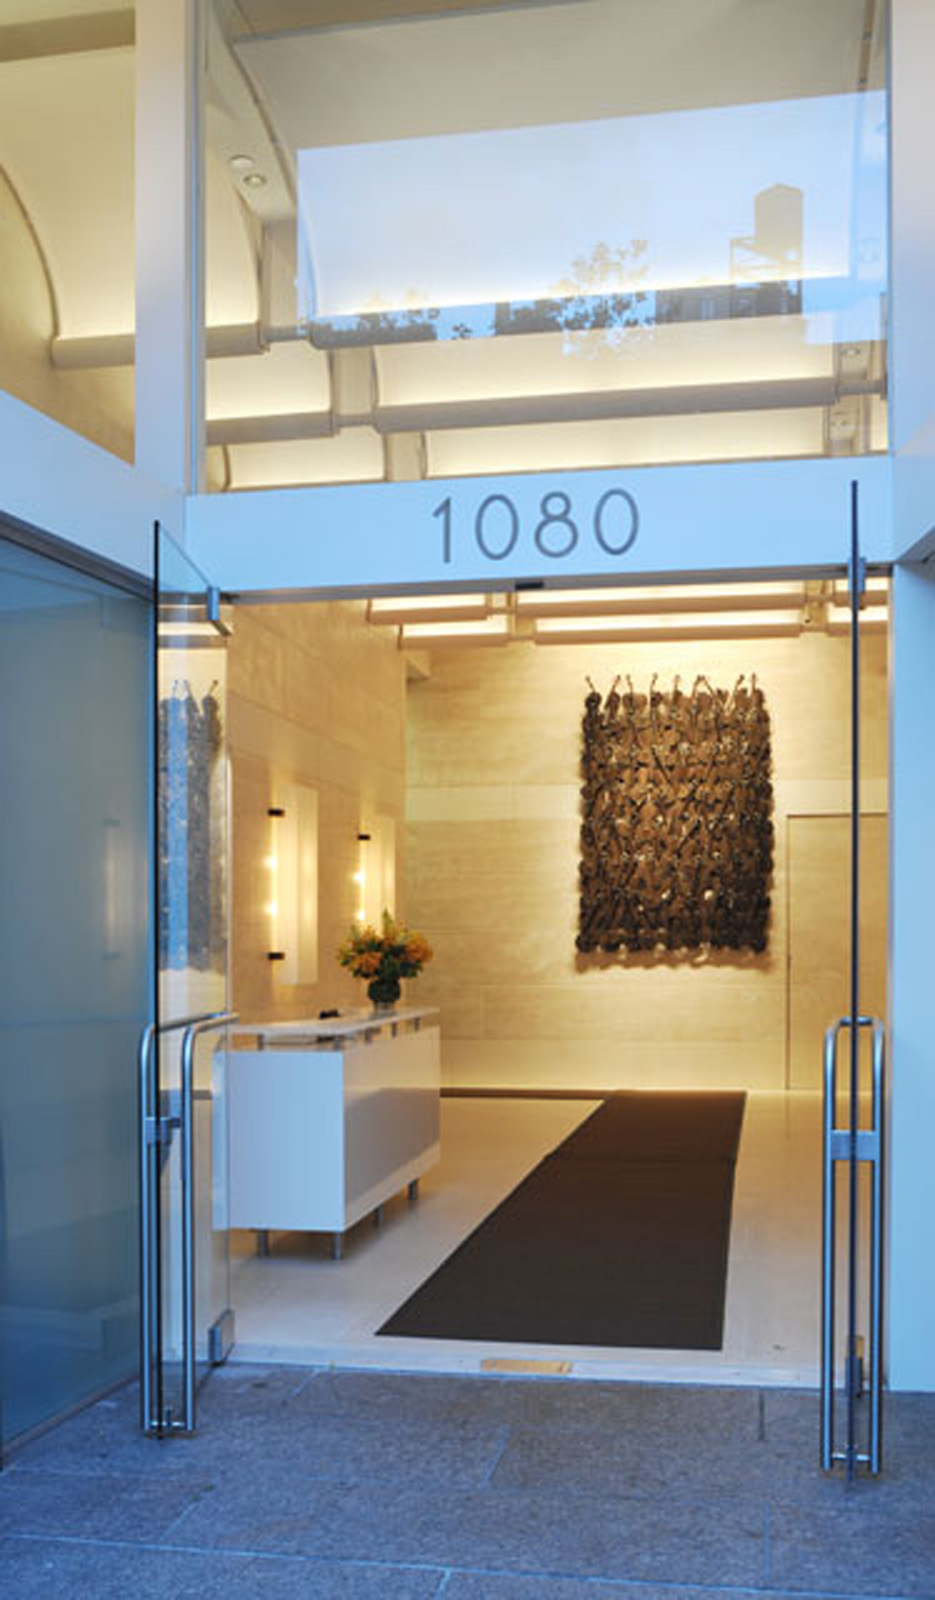 1080_MADISON_AVE_LOBBY_PIC_4_MAIN.jpg